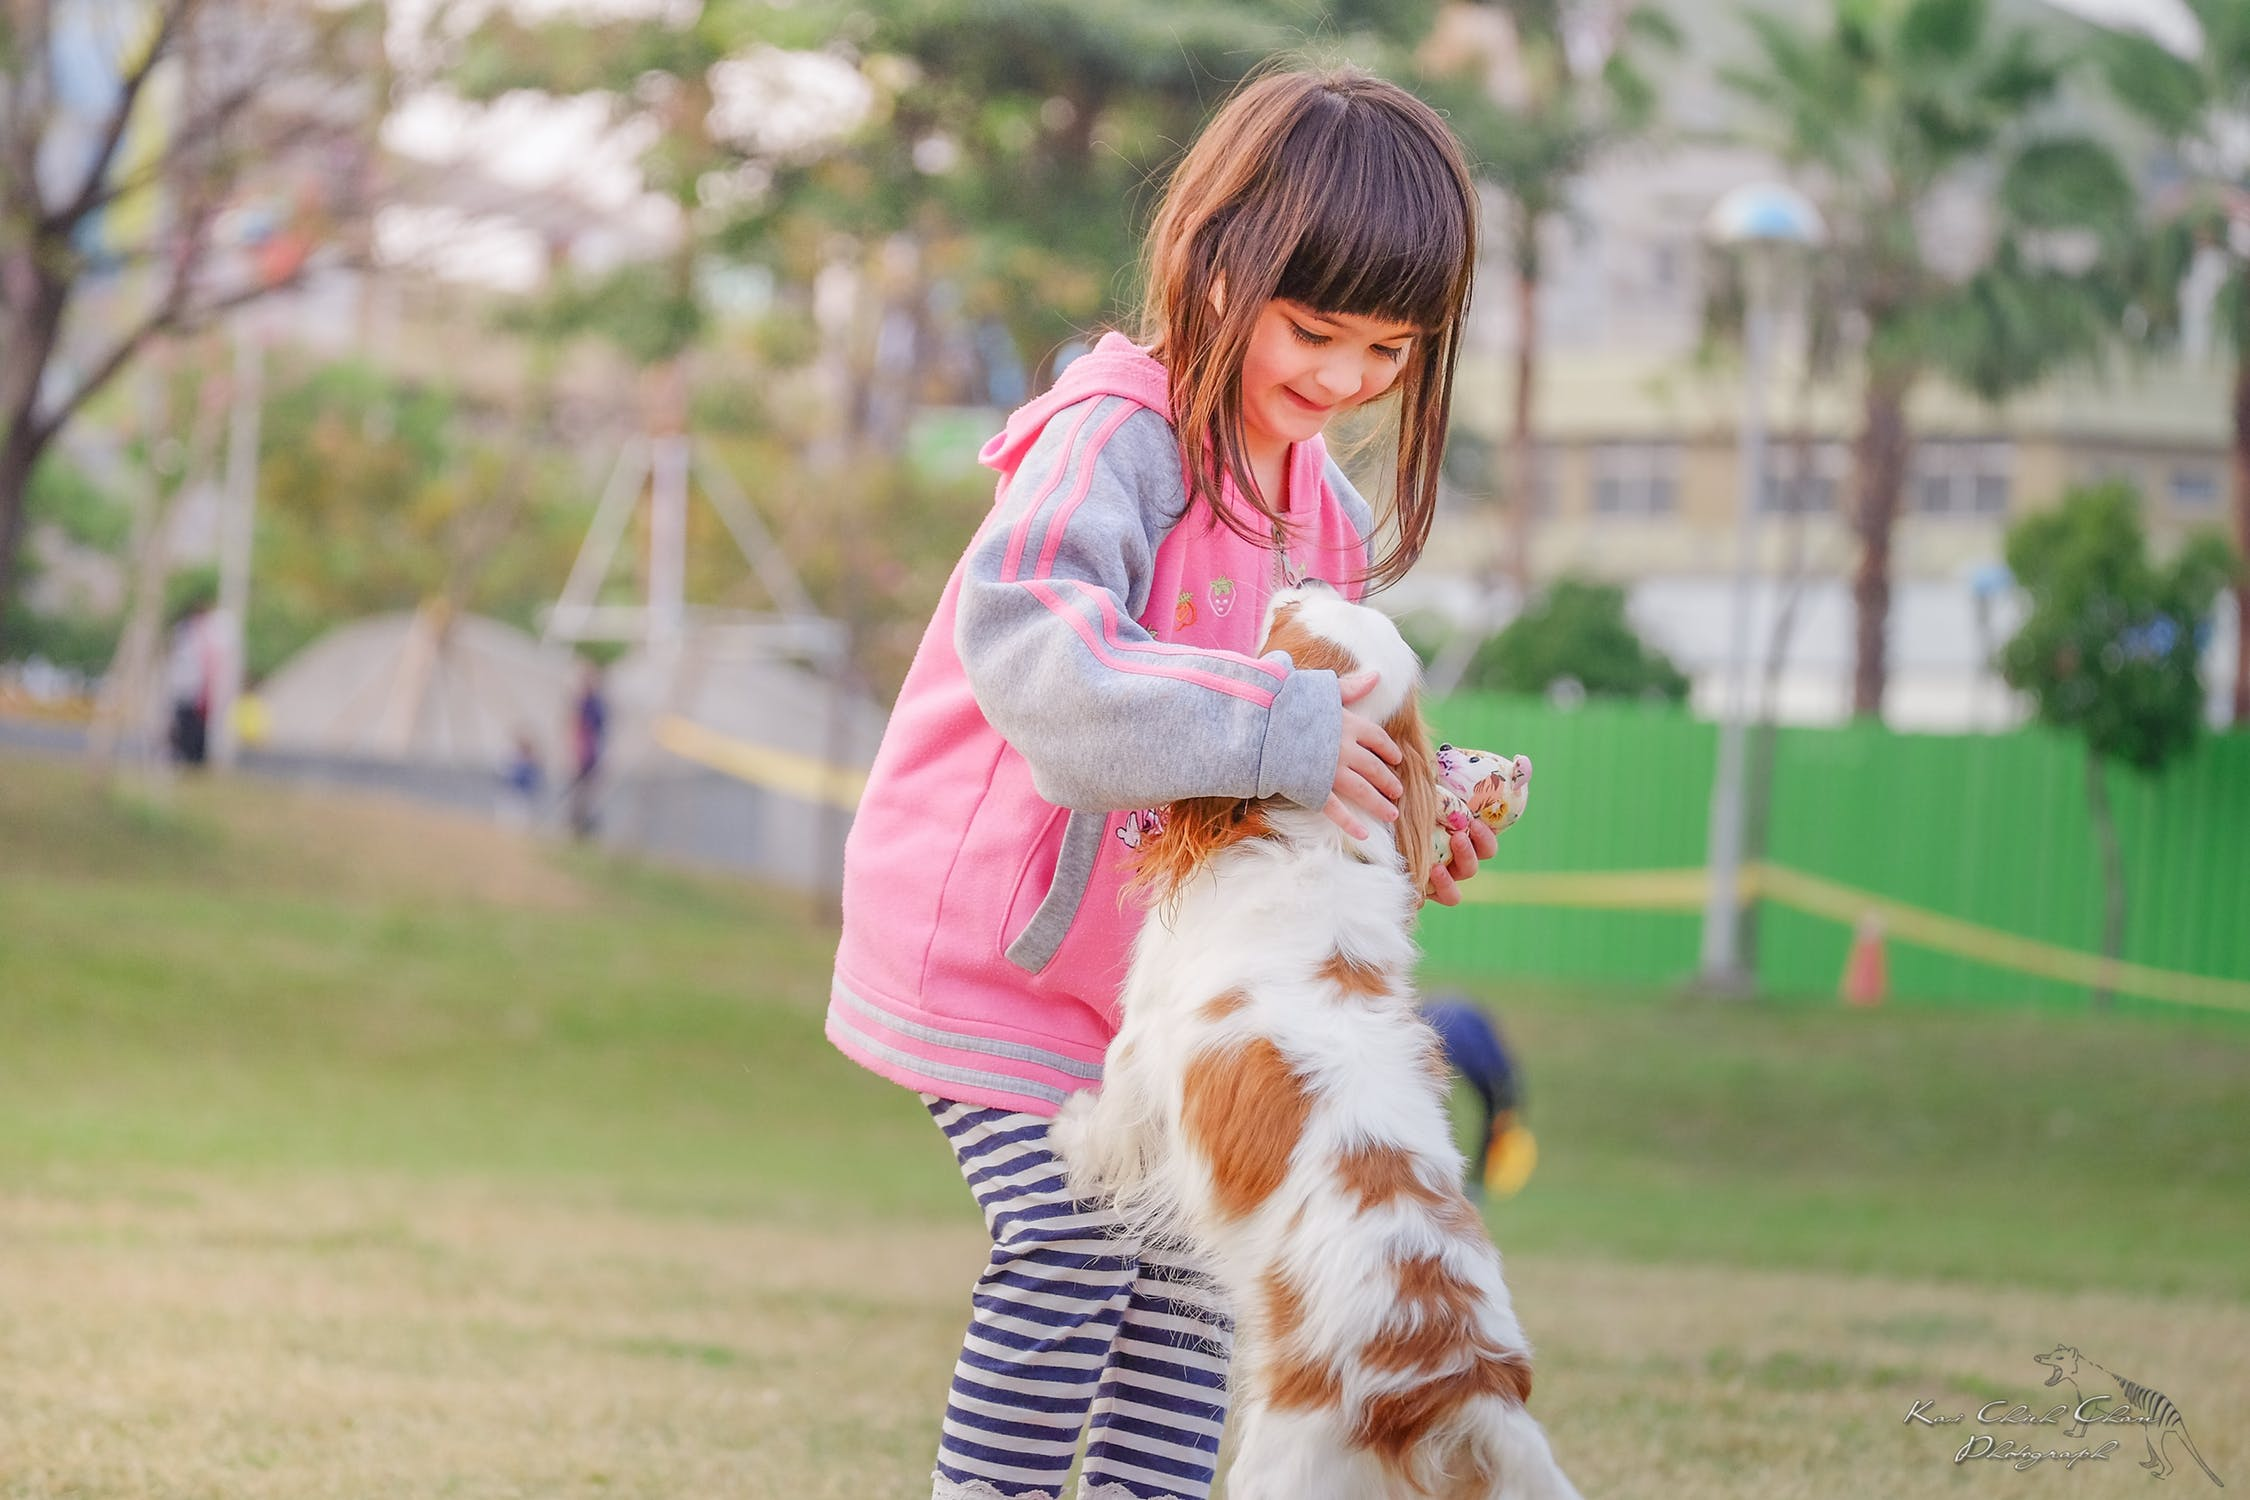 Do cats and dogs understand humans when they make miaowing or barking noises